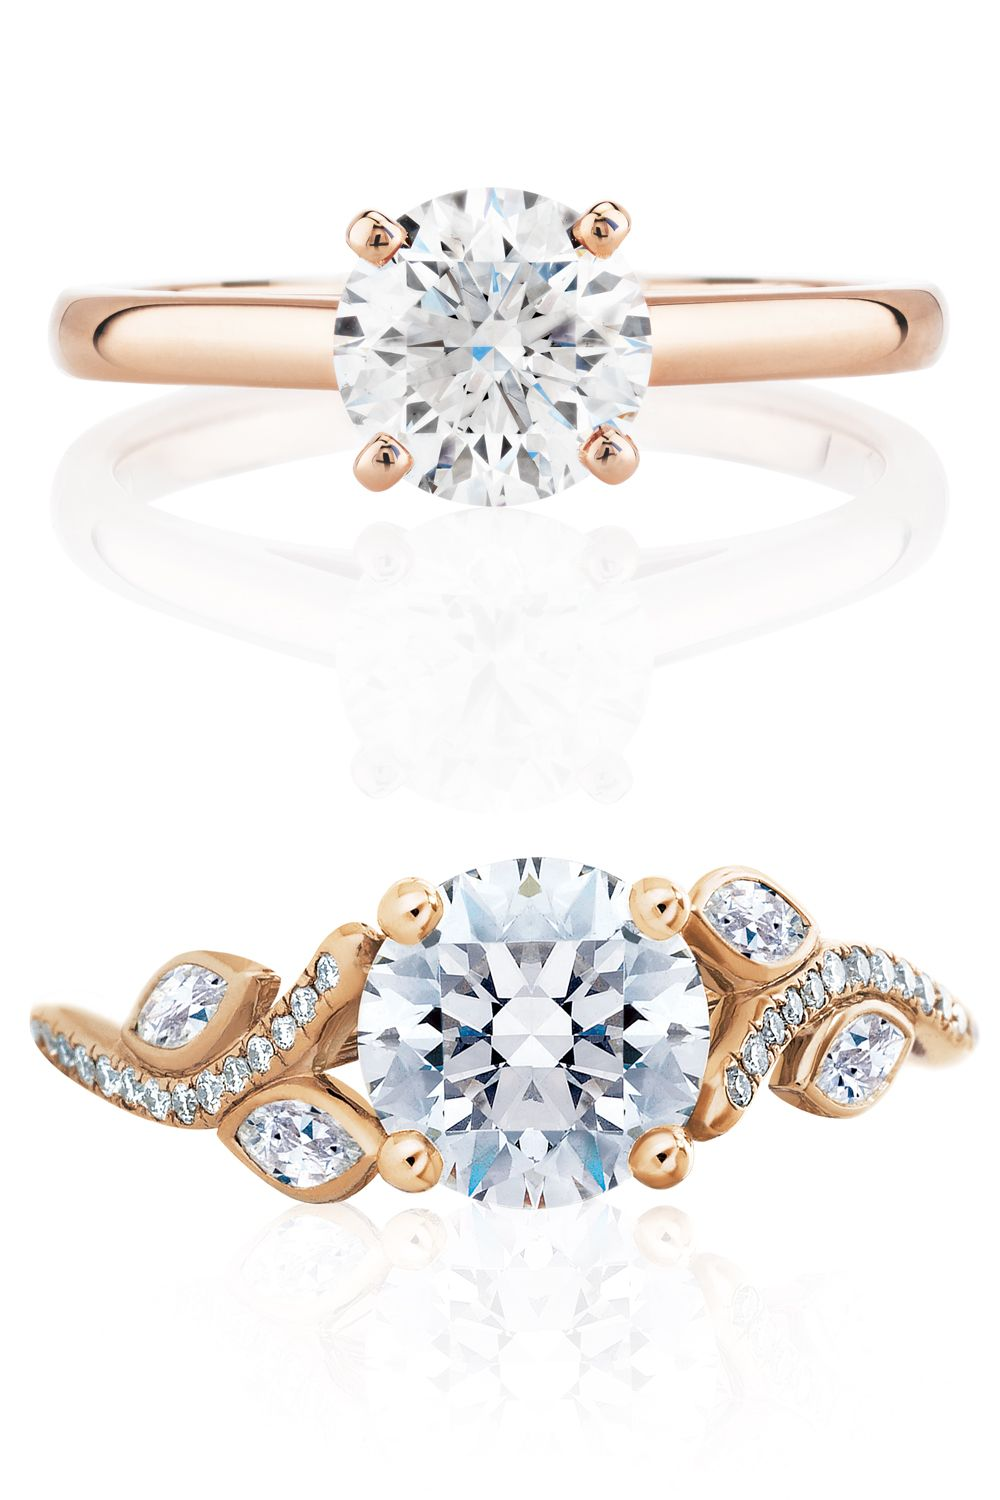 rings product more than yellow a diamond gold jewellery diamonds and engagement white just ring